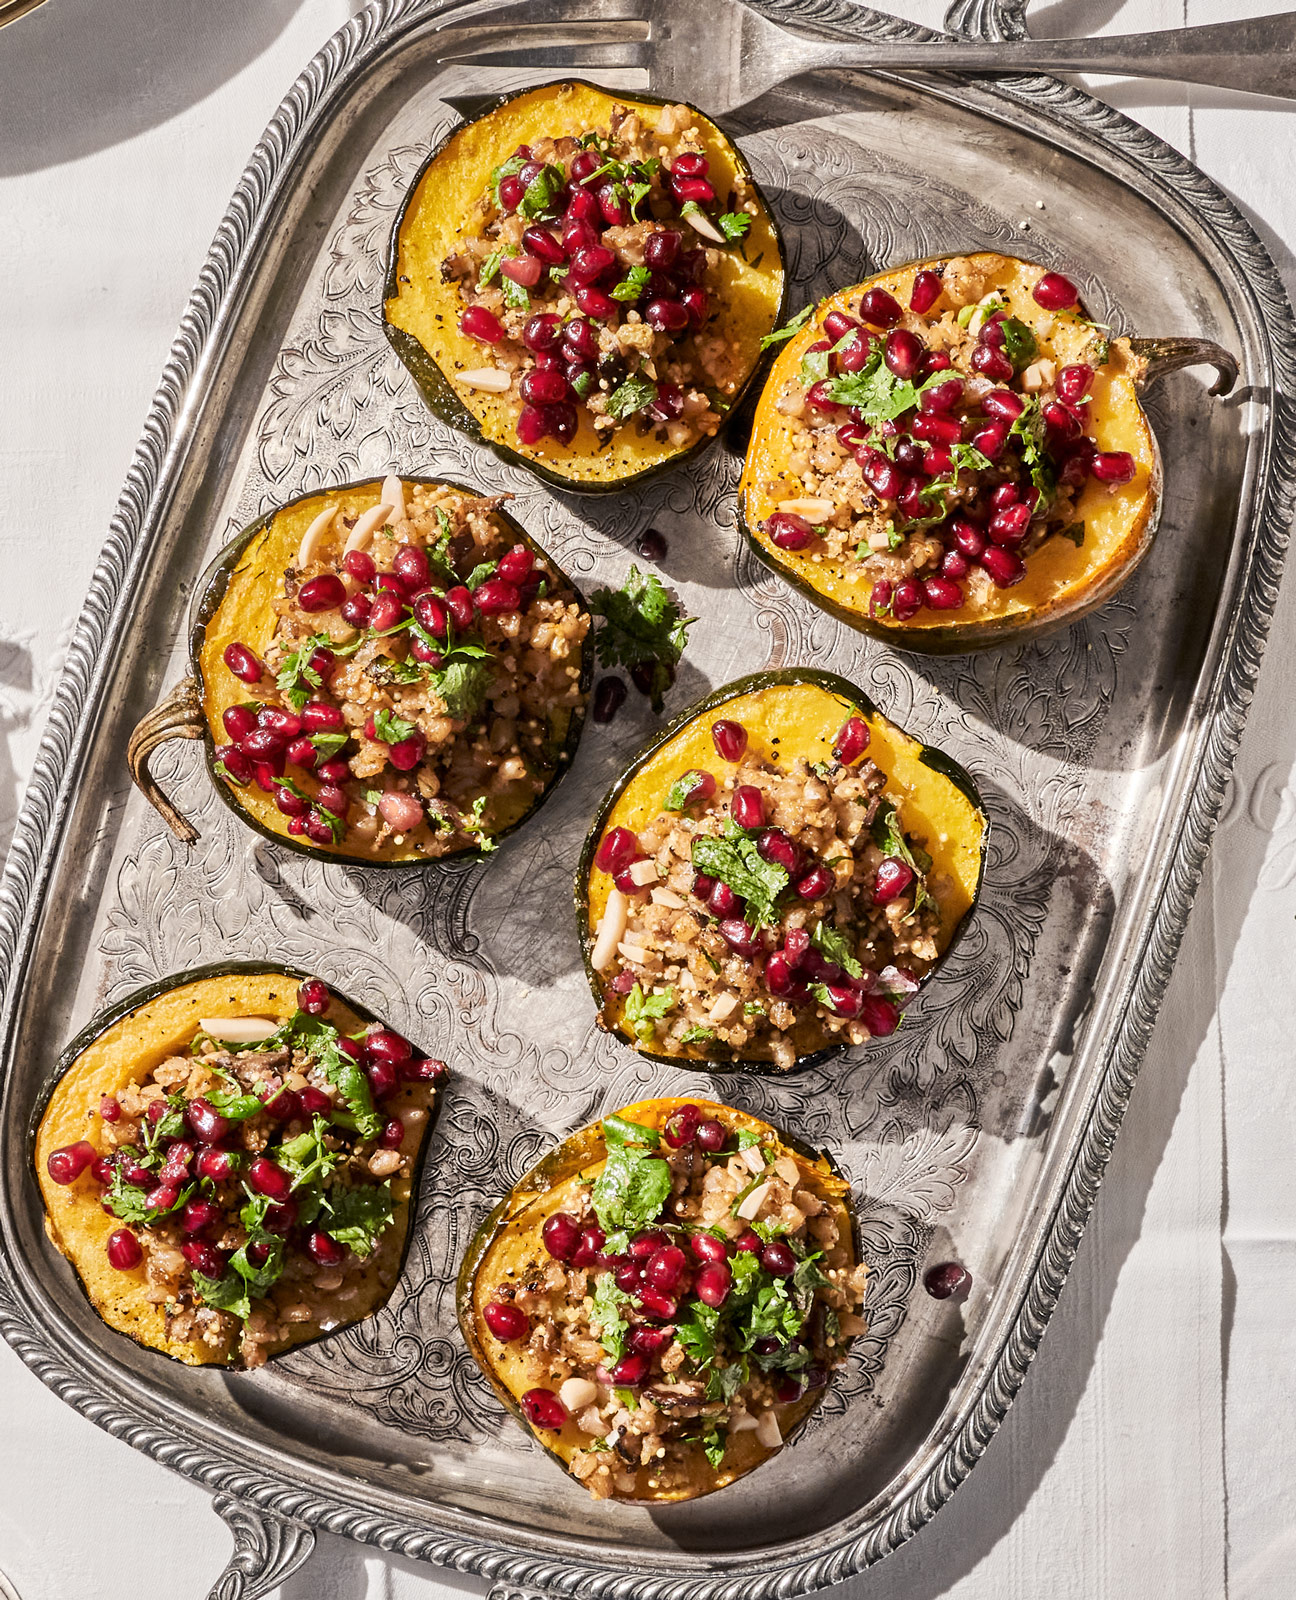 Acorn Squash With Mixed-grain Stuffing